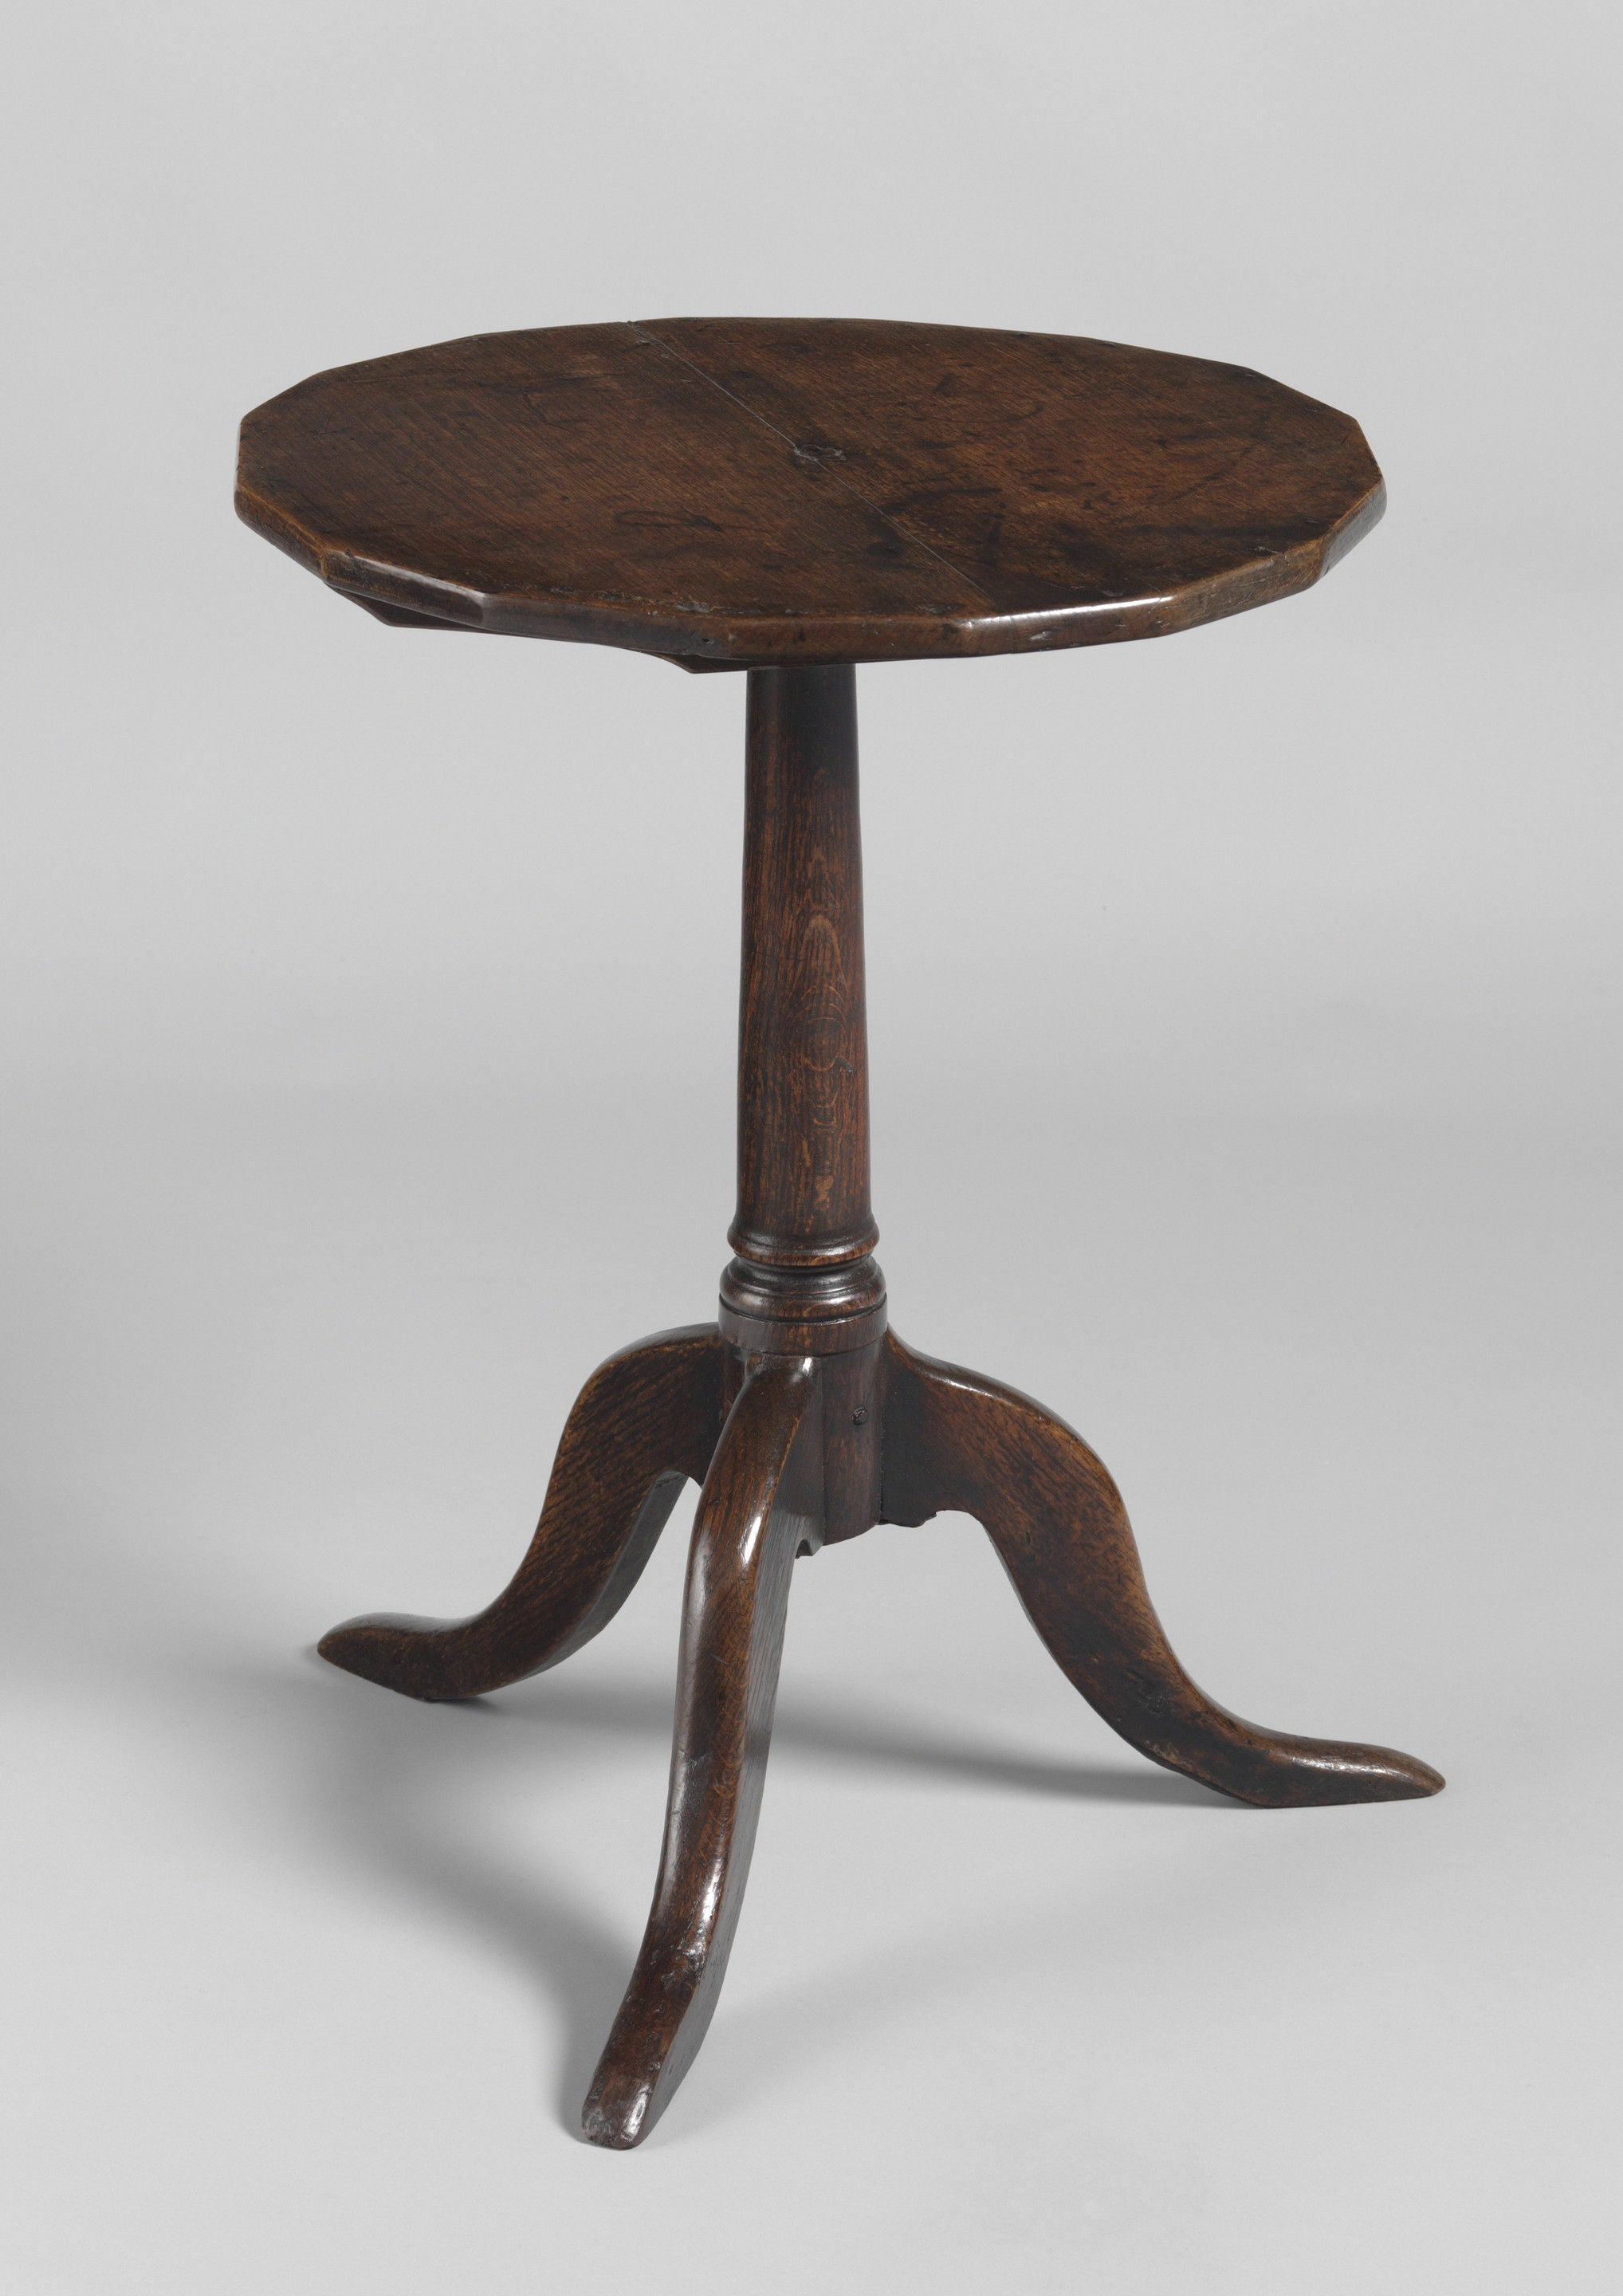 Georgian Tripod Wine Table With A Hexadecagonal Shaped Top